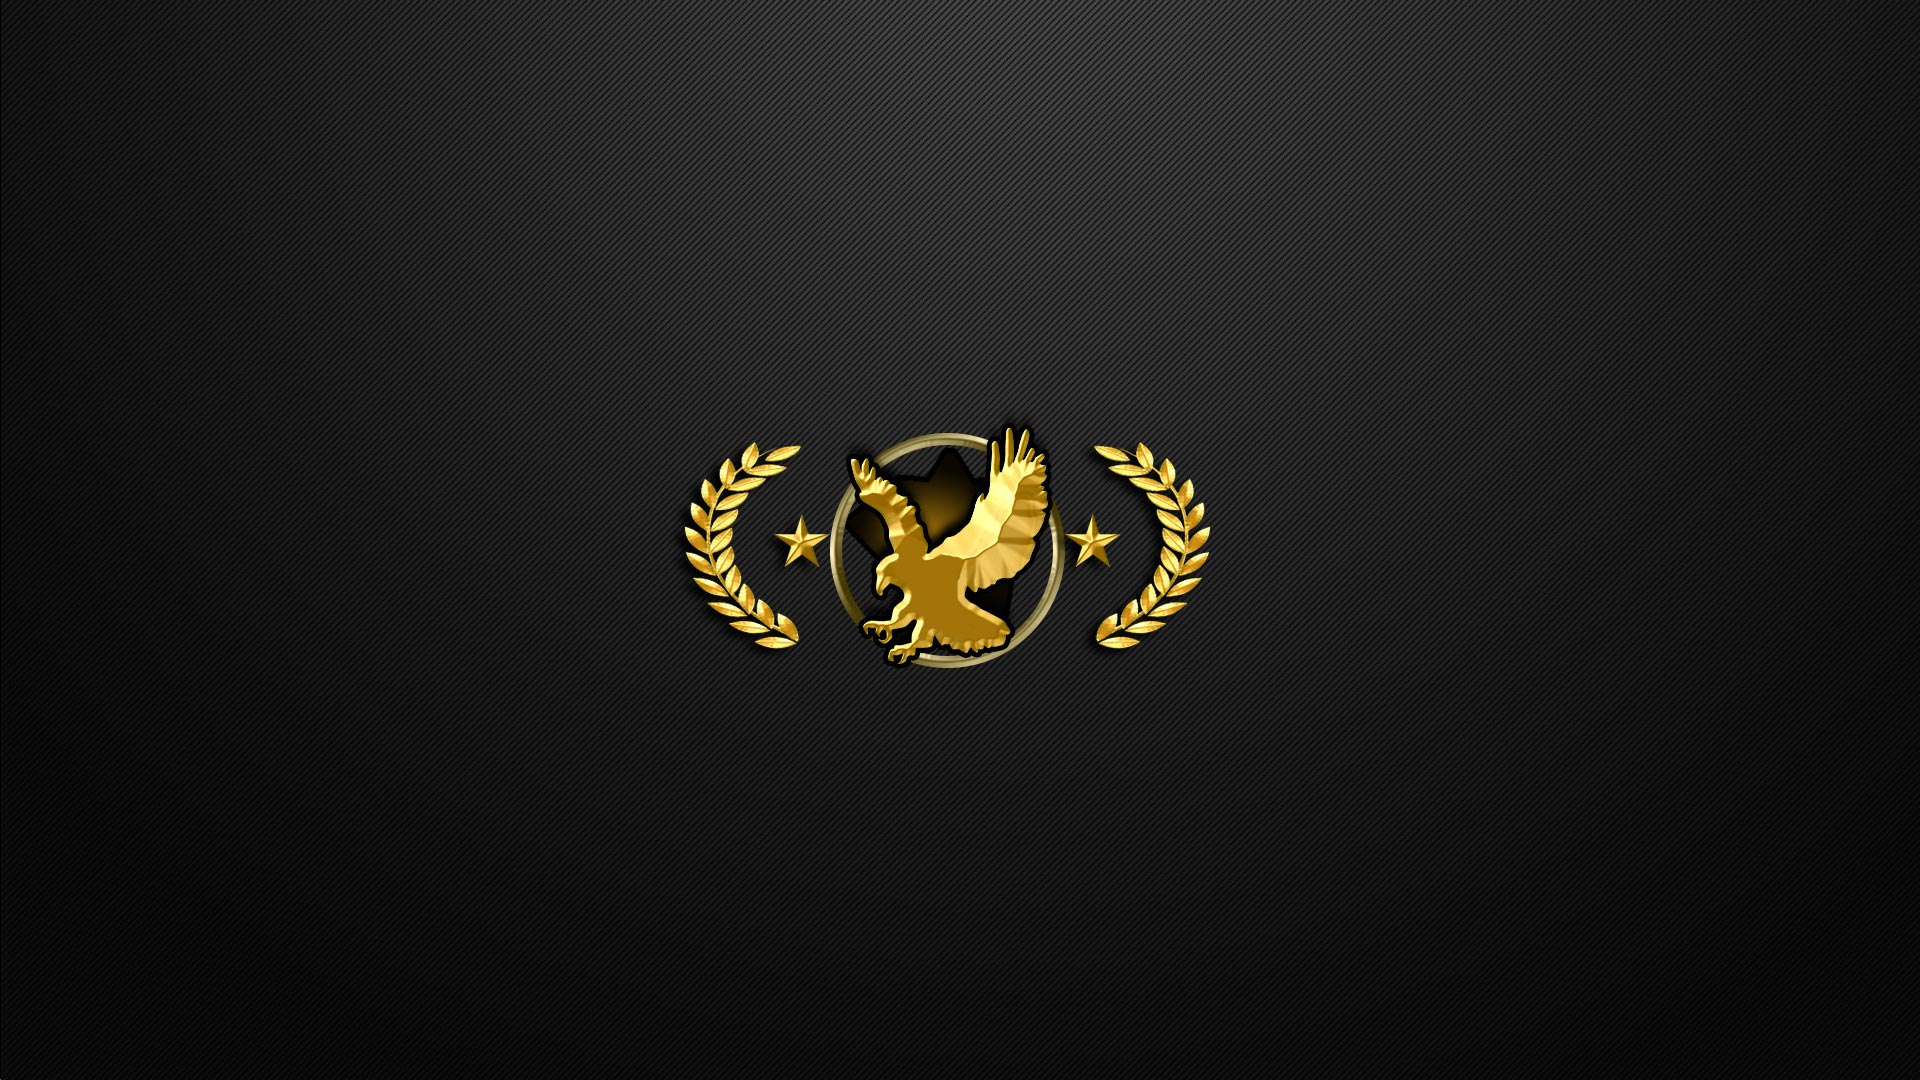 cs-go-rank-legendary-eagle-master